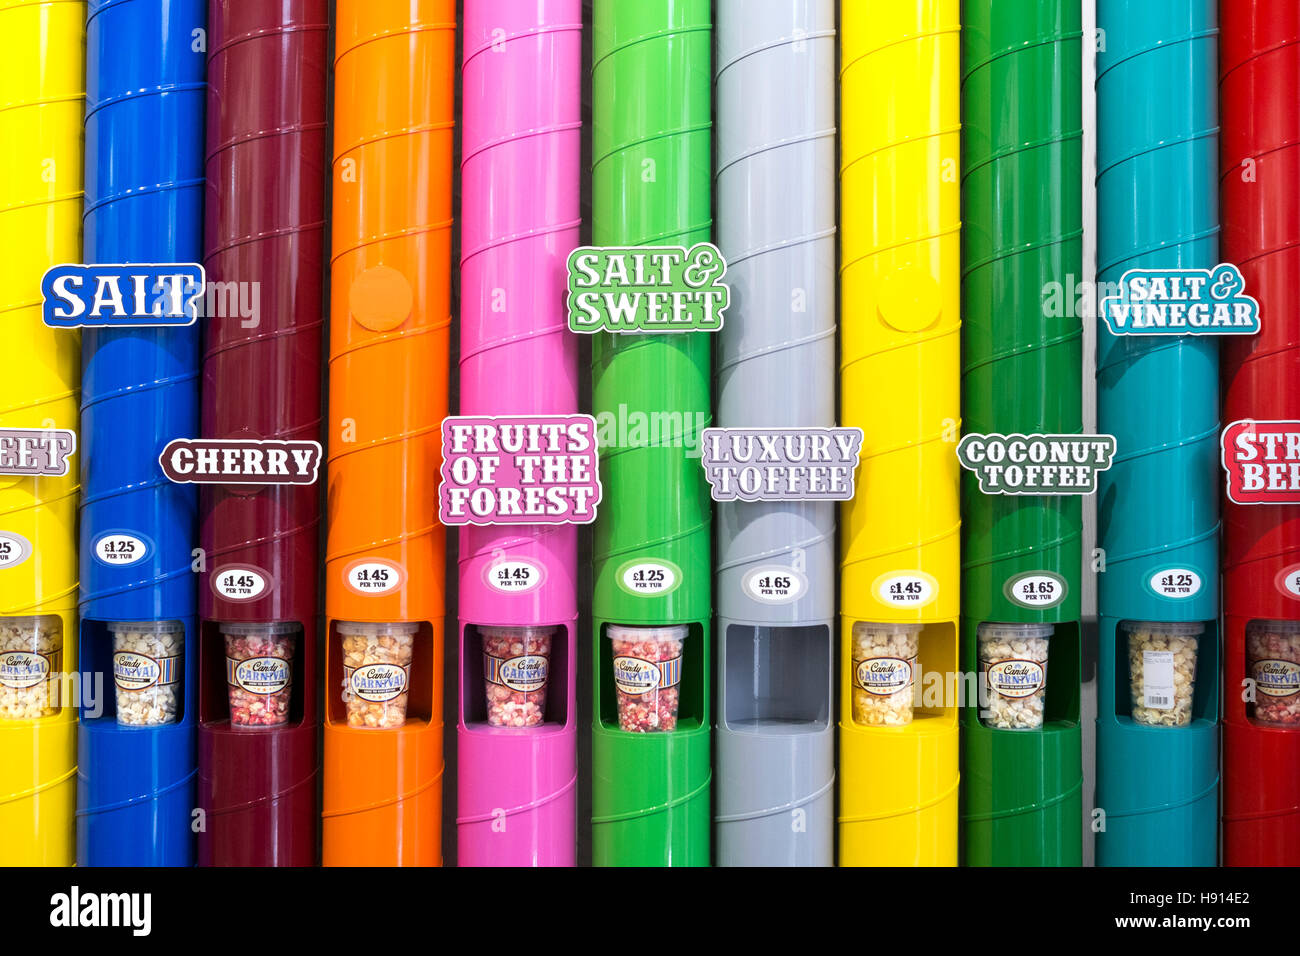 A display of varieties of popcorn flavours, SALT, CHERRY, SWEET, FRUITS, LUXURY TOFFEE, COCONUT, in coloured vertical - Stock Image